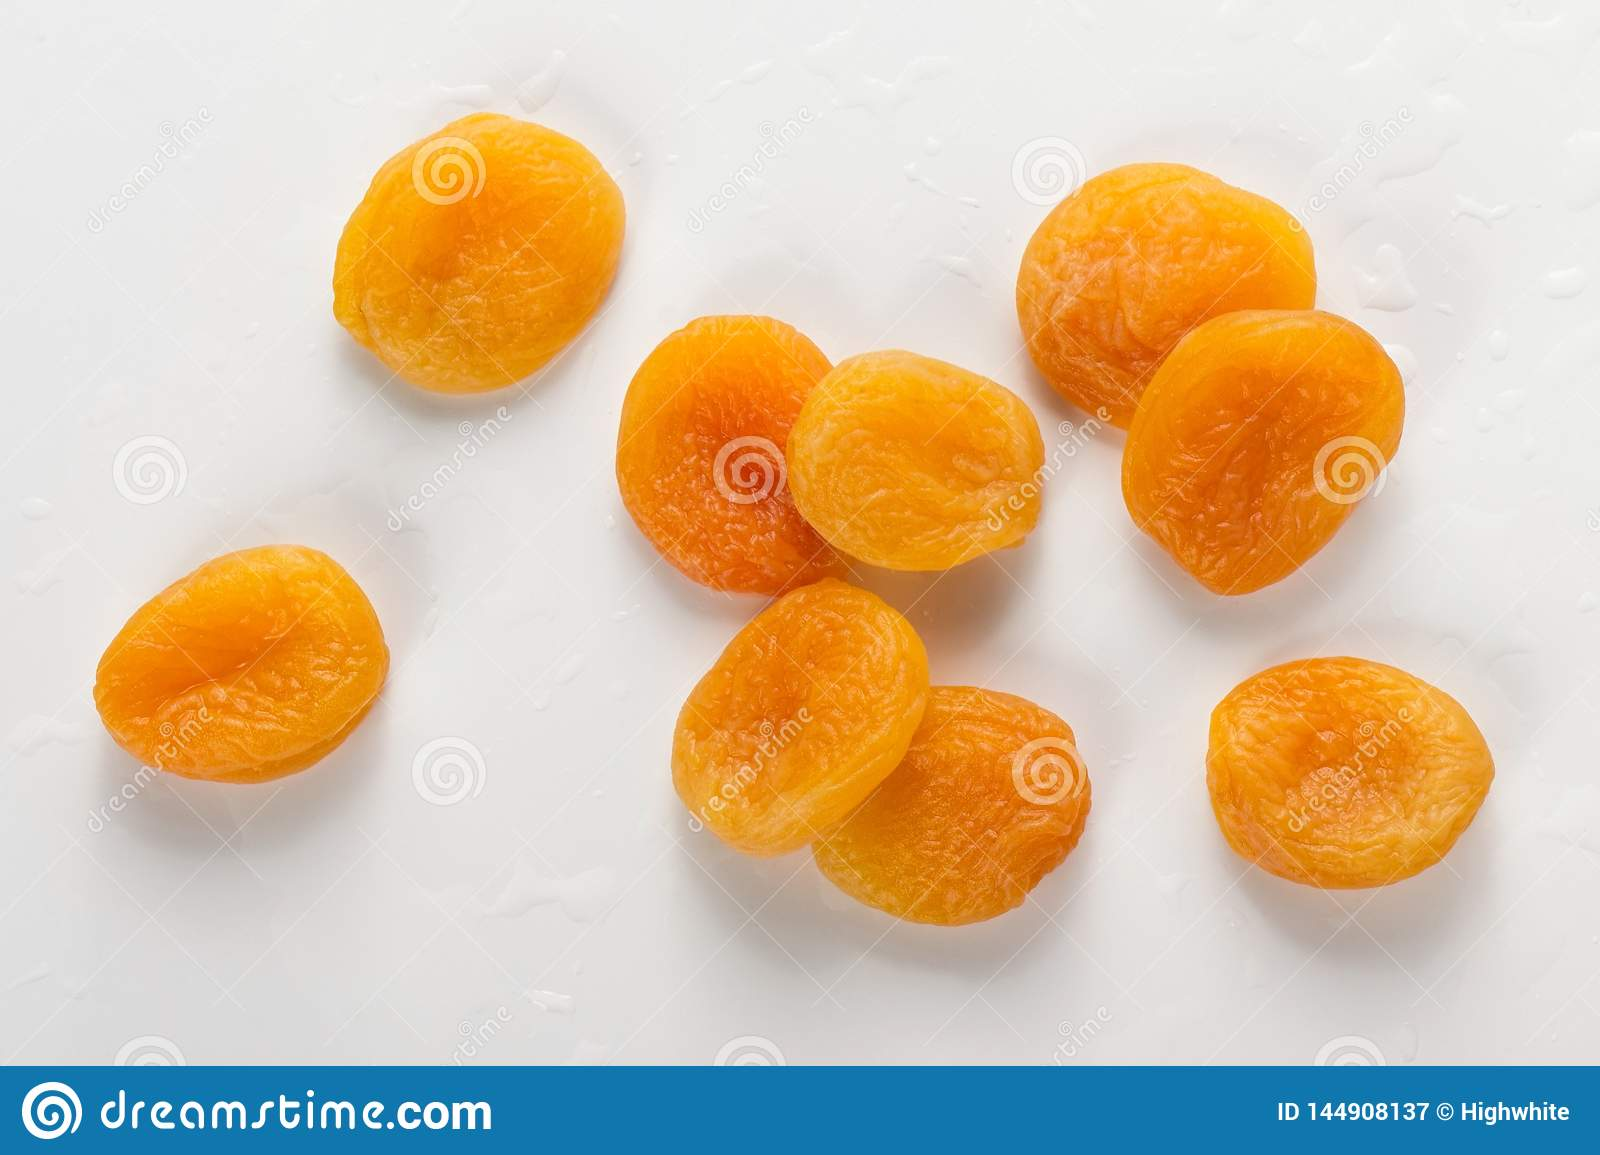 Pile of fresh dried apricots on white background, washed fruits in water , macro photo close up, top view.